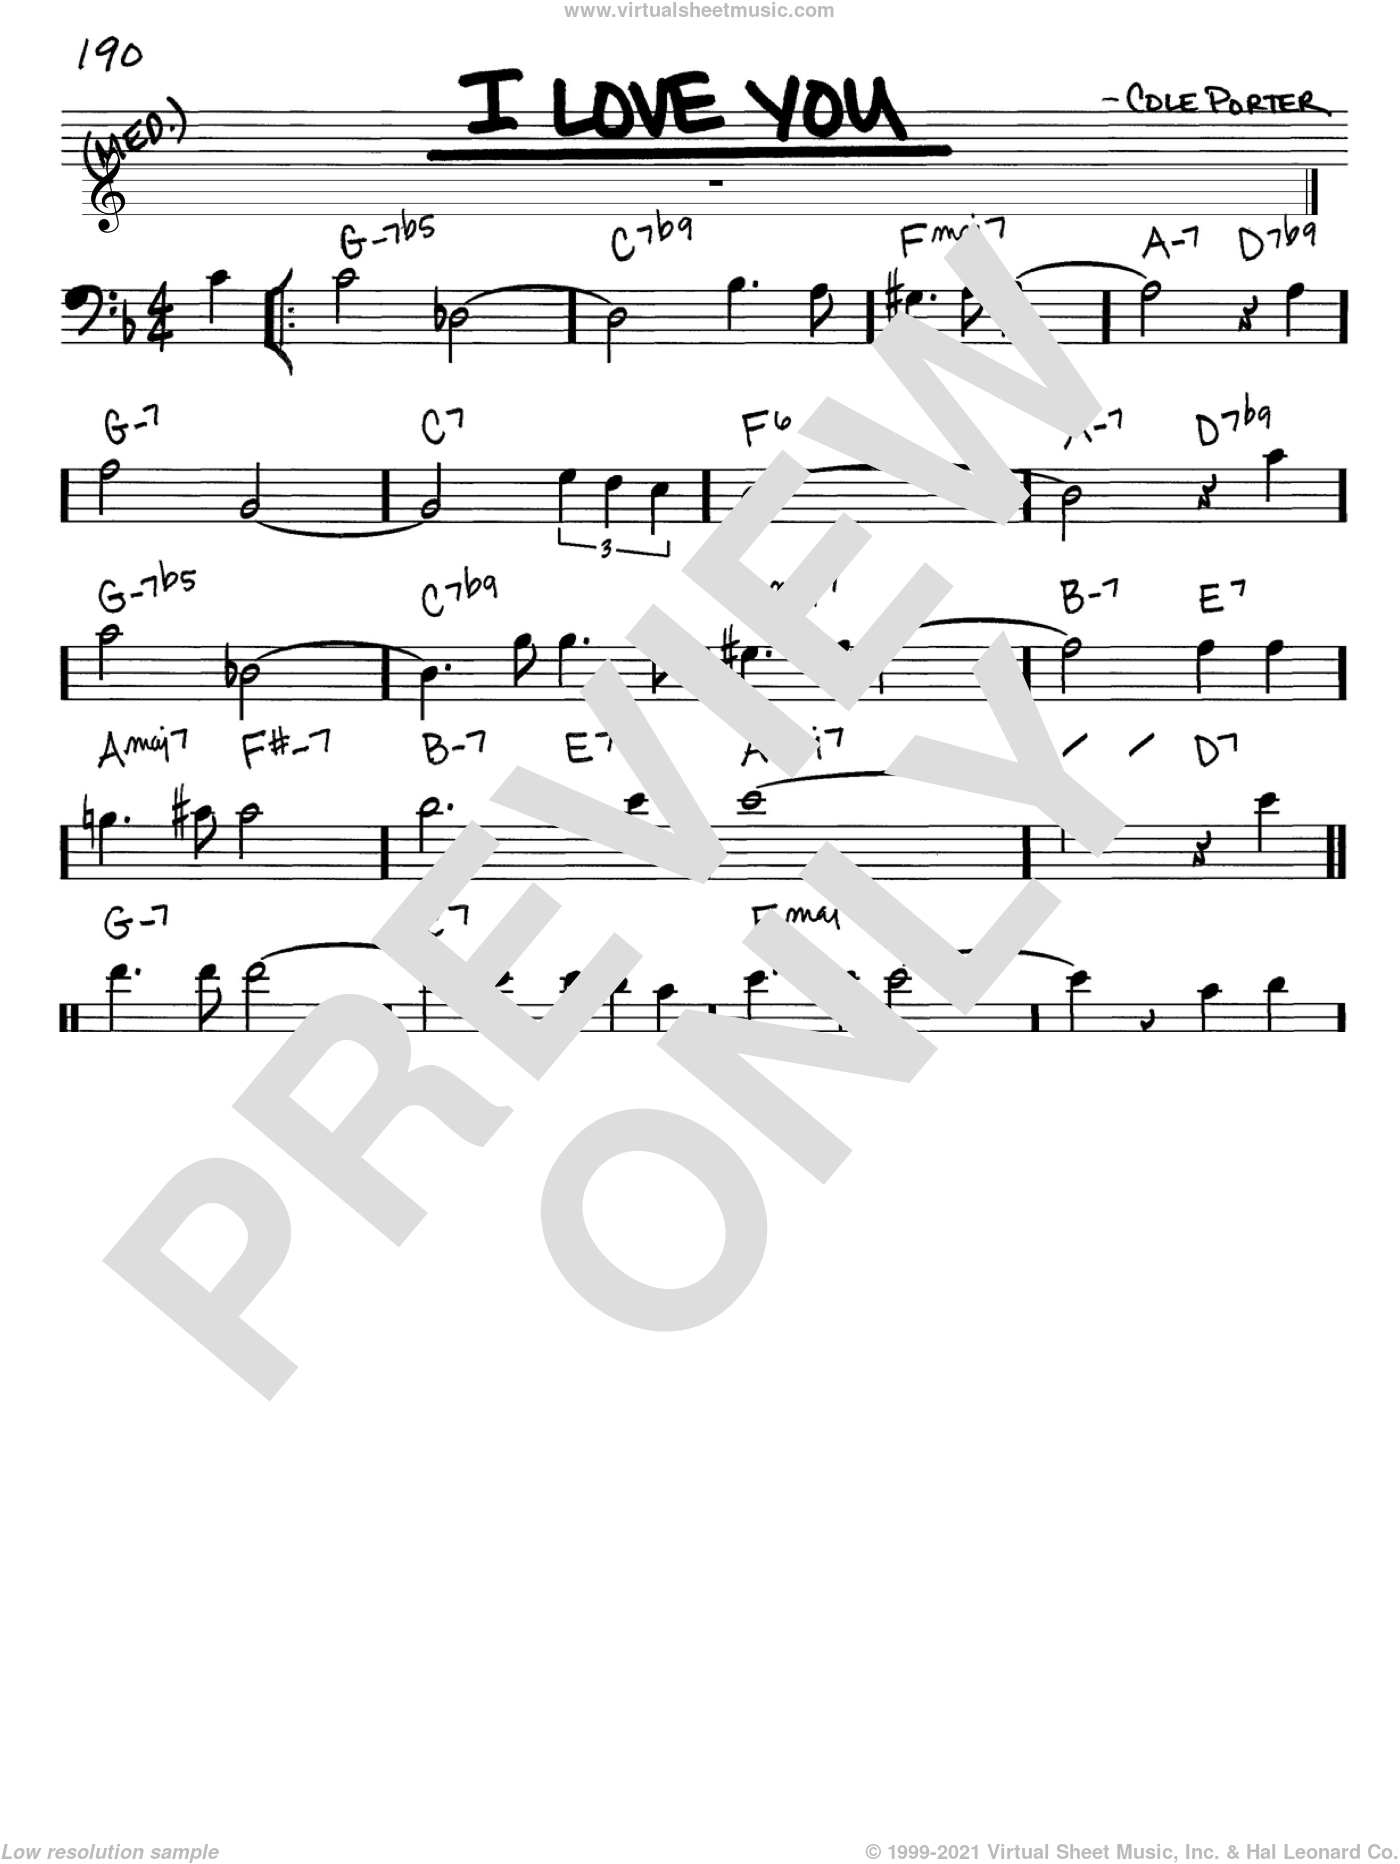 I Love You sheet music for voice and other instruments (Bass Clef ) by Cole Porter. Score Image Preview.